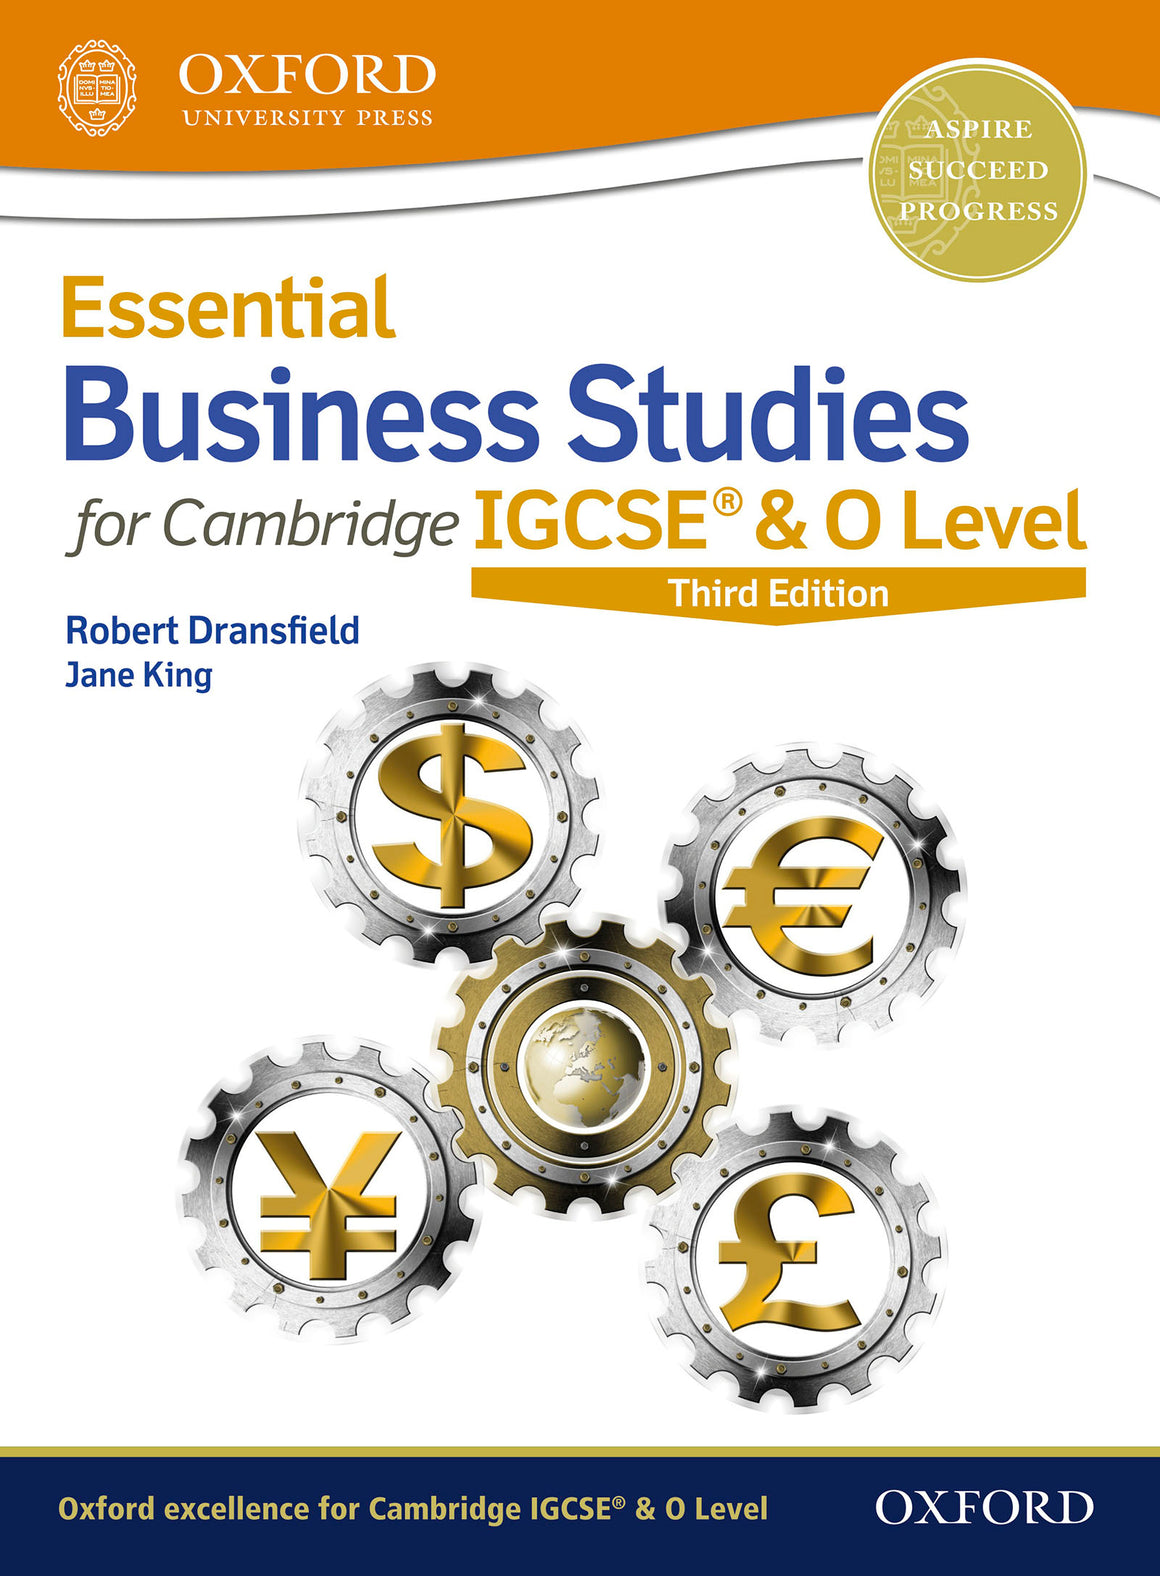 Essential Business Studies for Cambridge IGCSE® & O Level